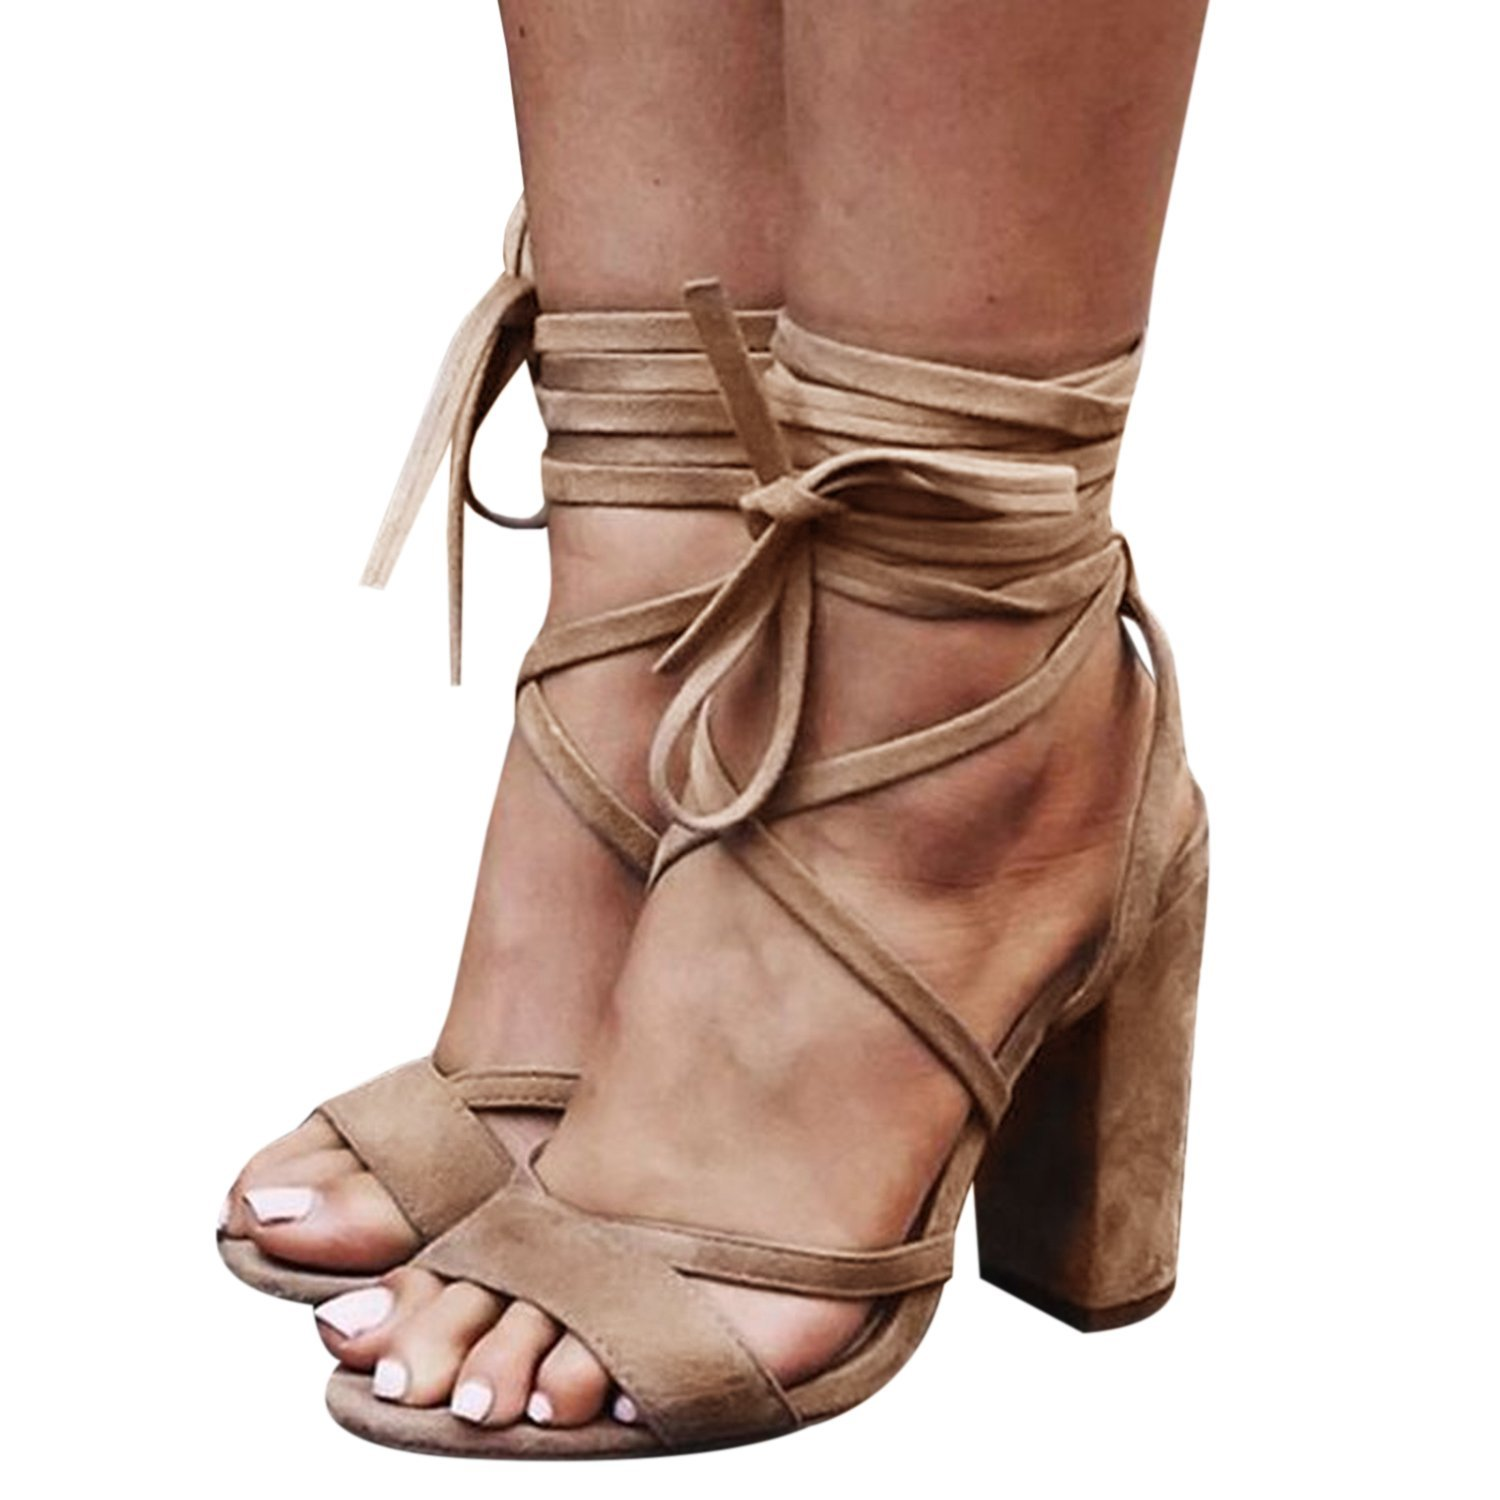 Liyuandian Womens Platform Open Toe Ankle Strap Zipper Back High Heel Sandals